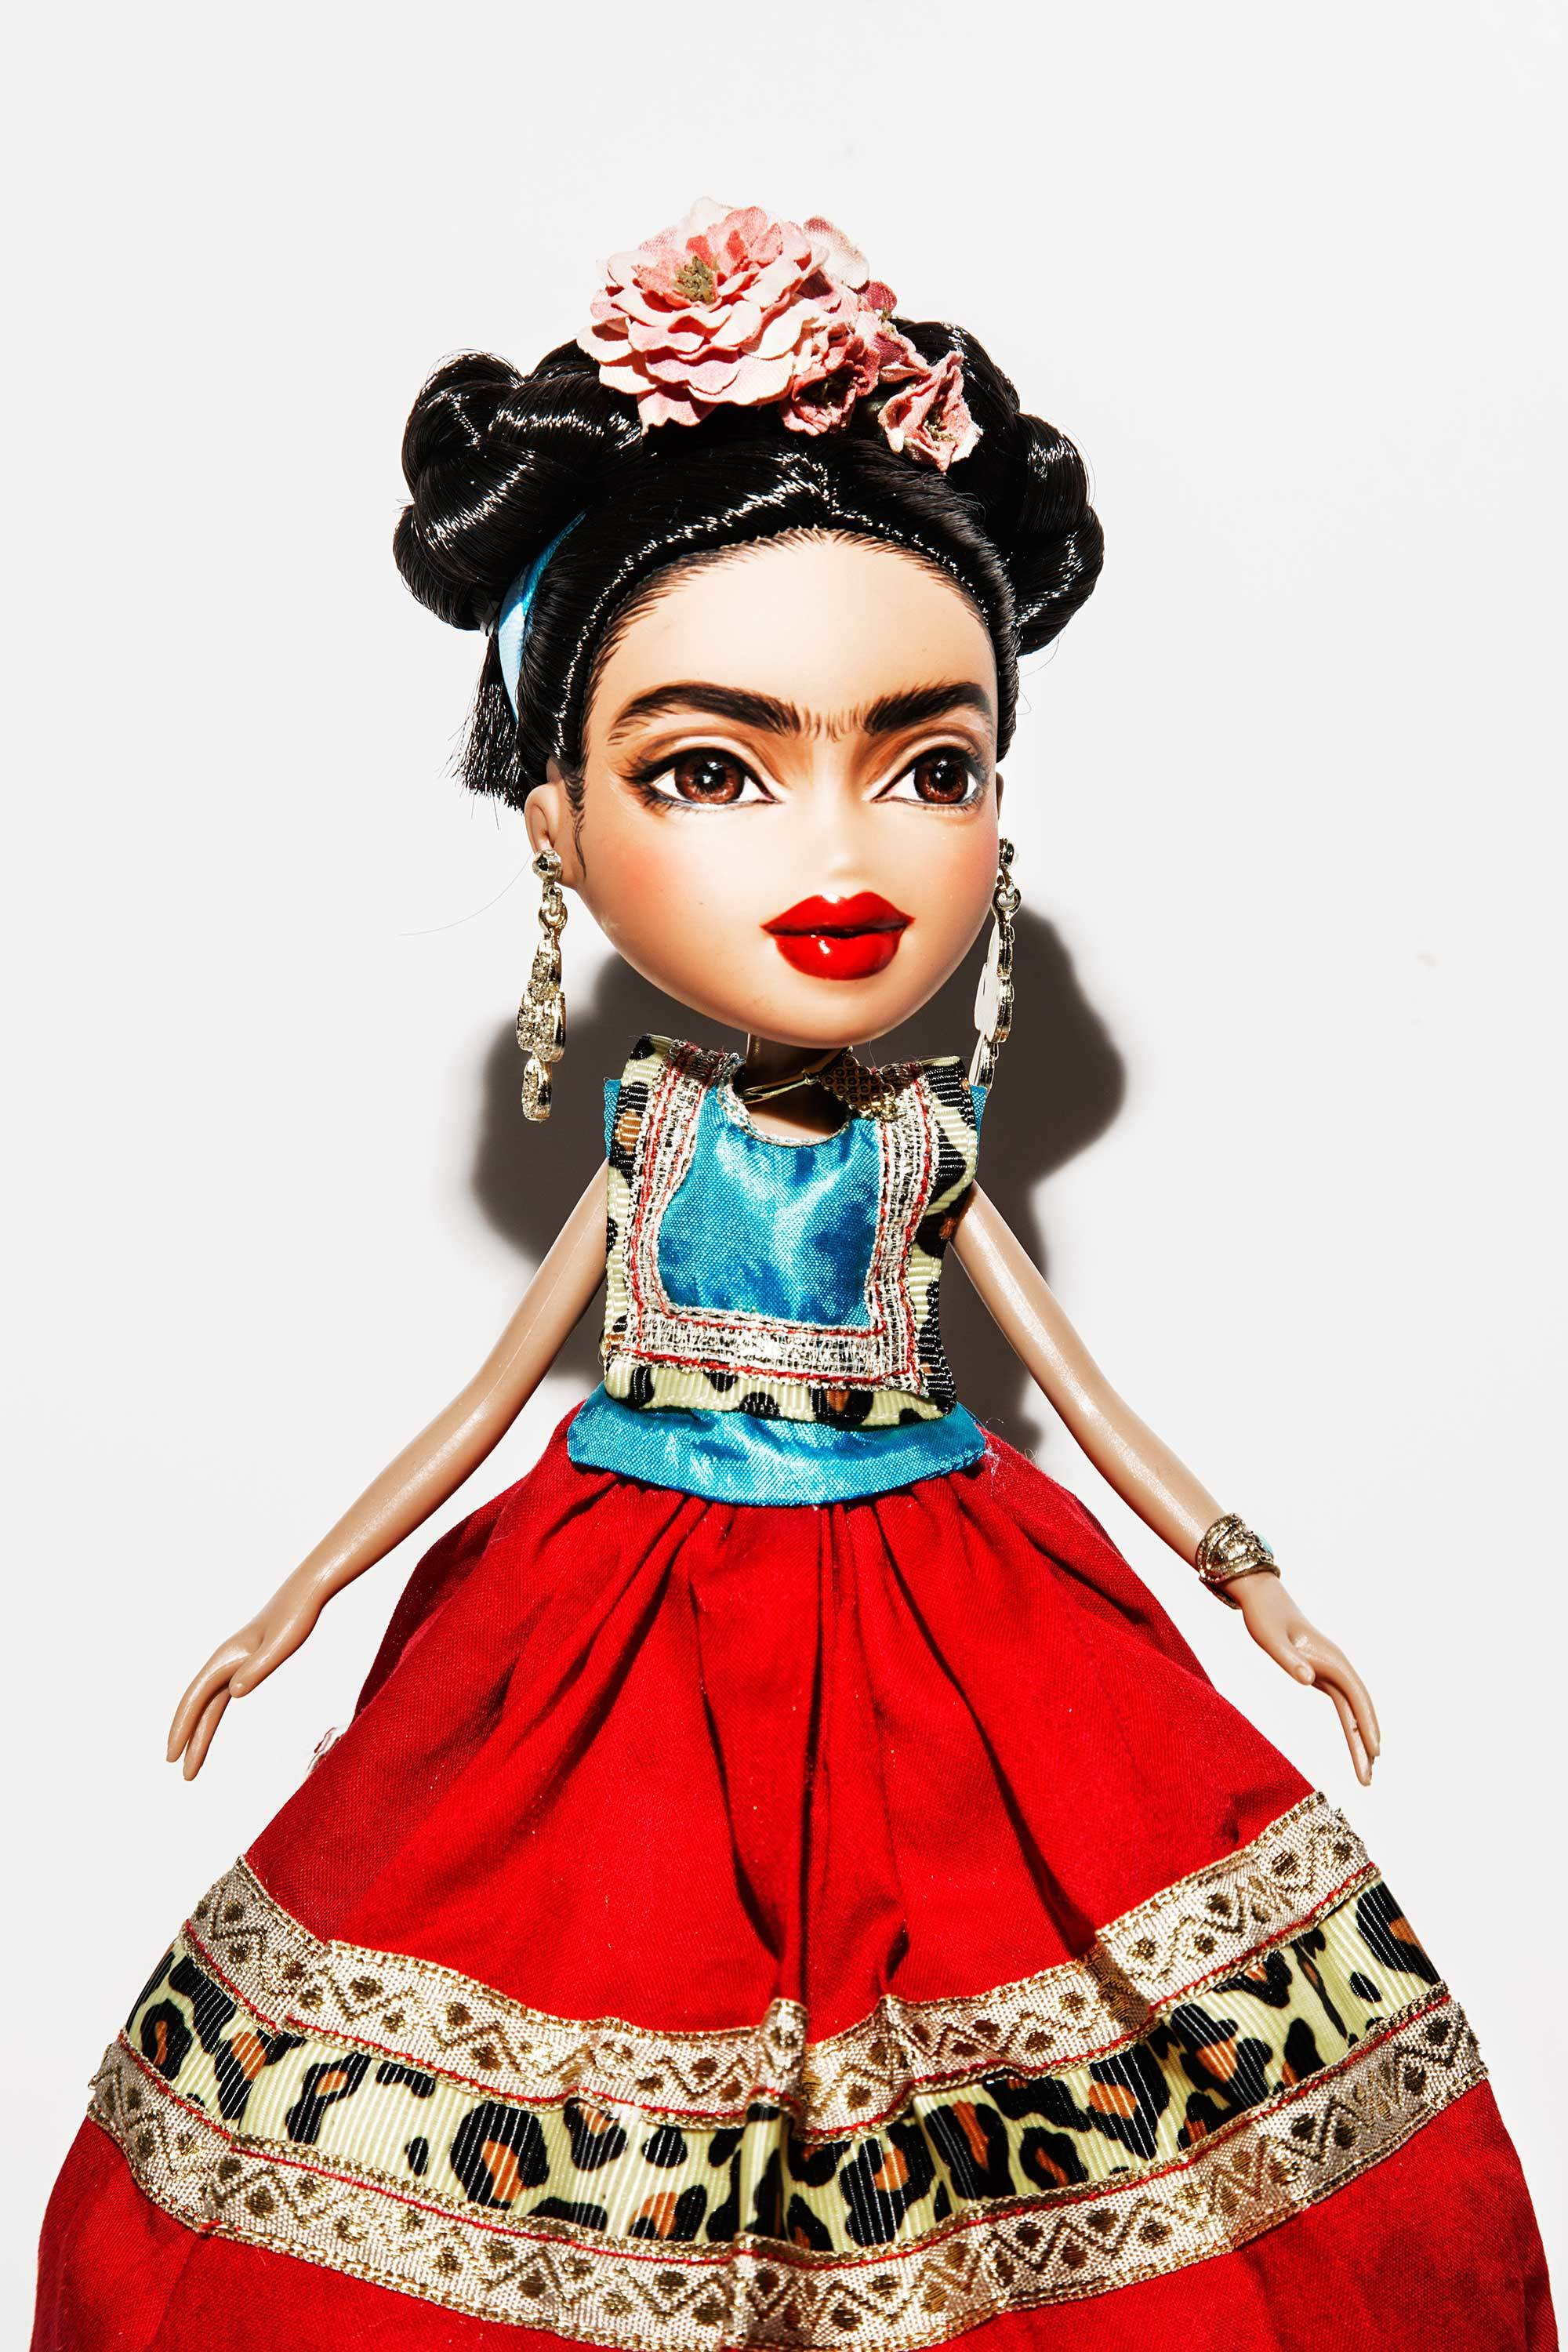 Meet the designers behind the controversial bratz dolls broadly Bratz fashion look and style doll